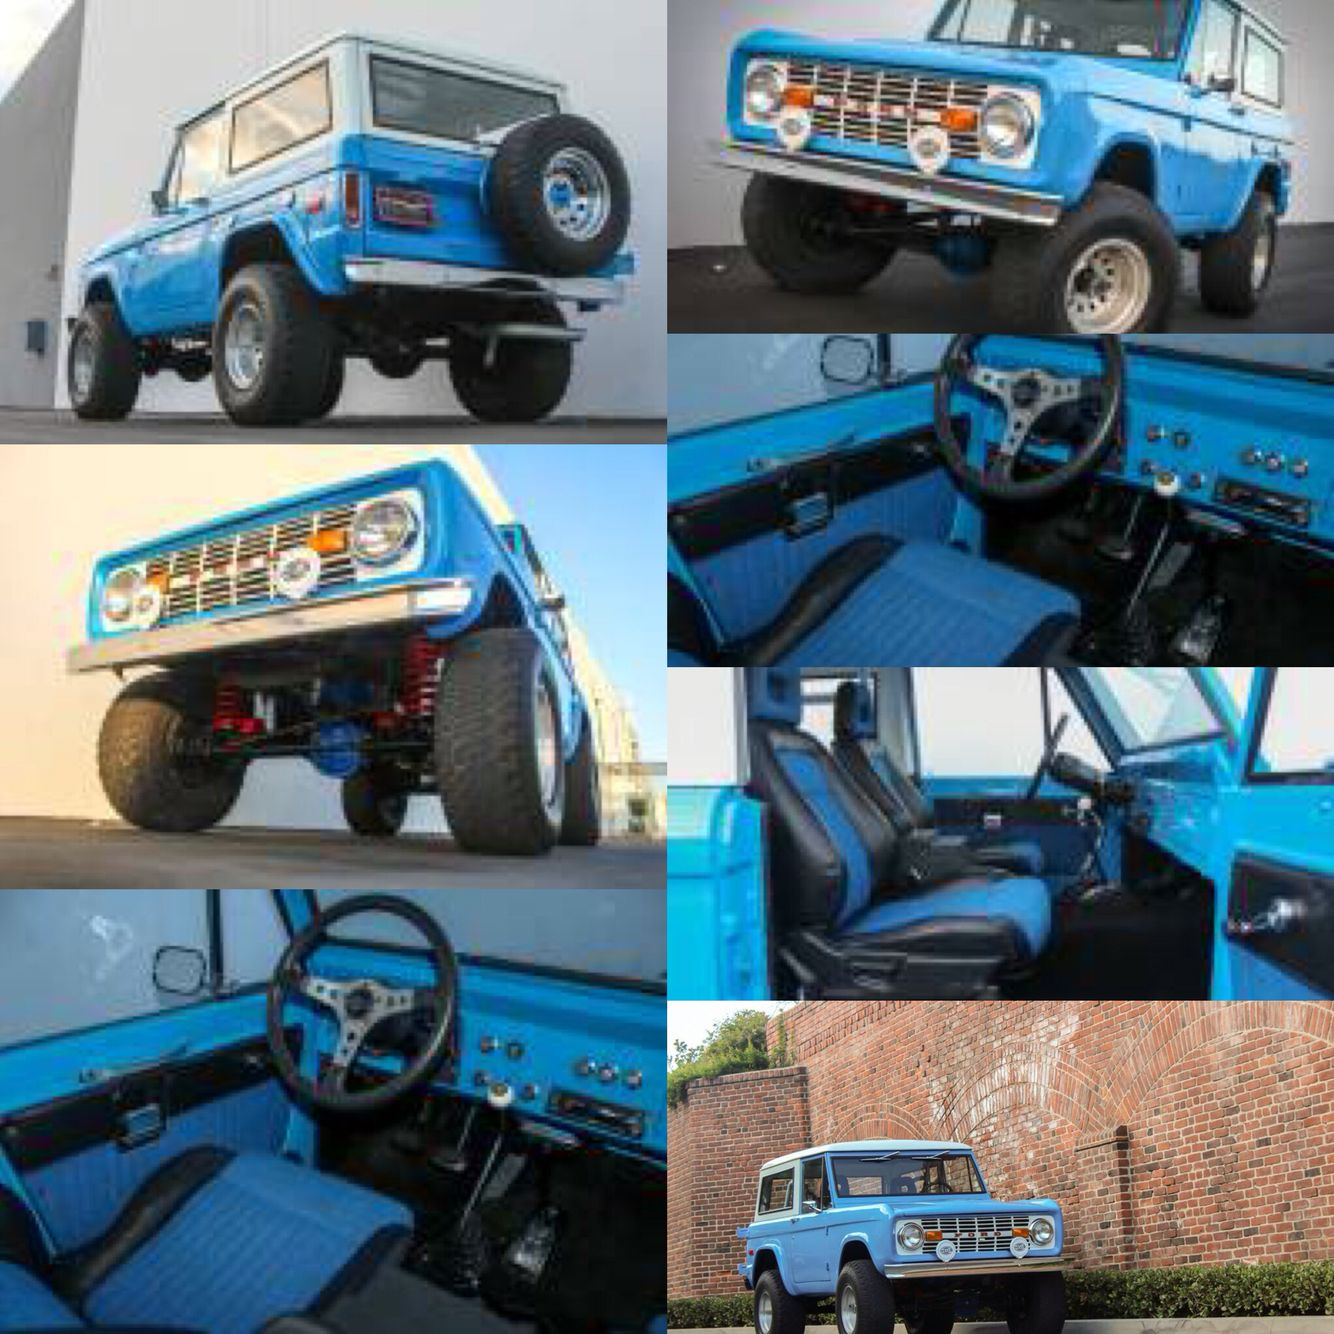 For sale is a 1970 Ford Bronco, California truck, recently